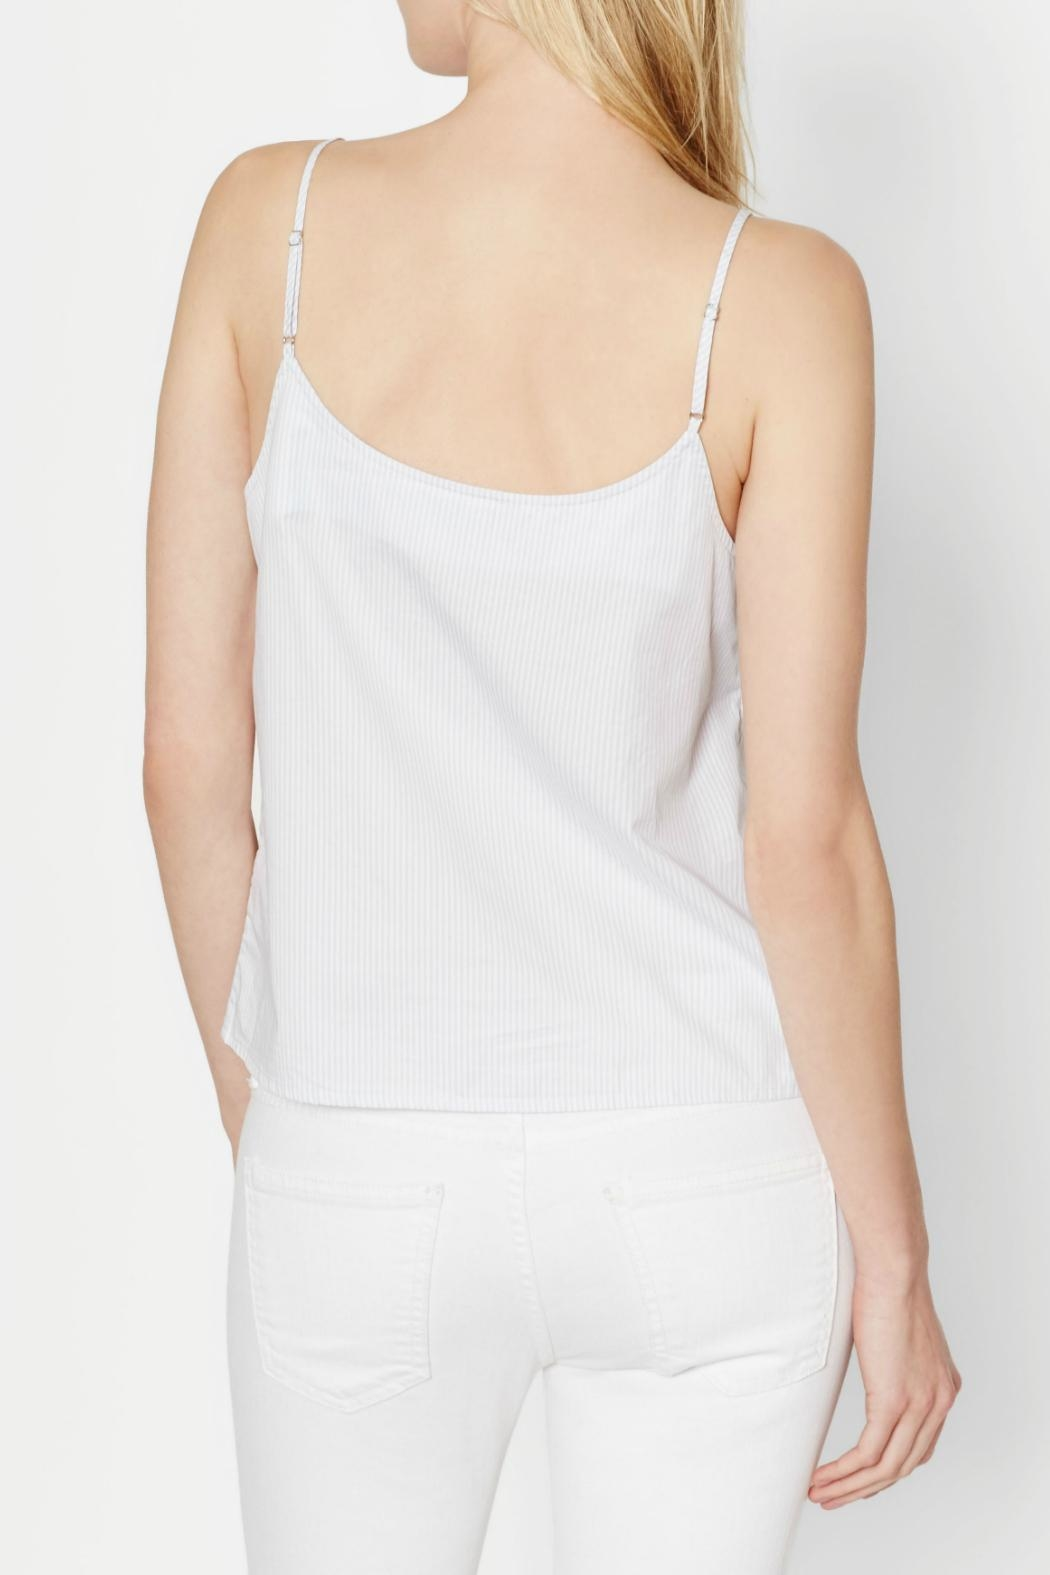 Equipment Perrin Cotton Cami Top - Front Full Image